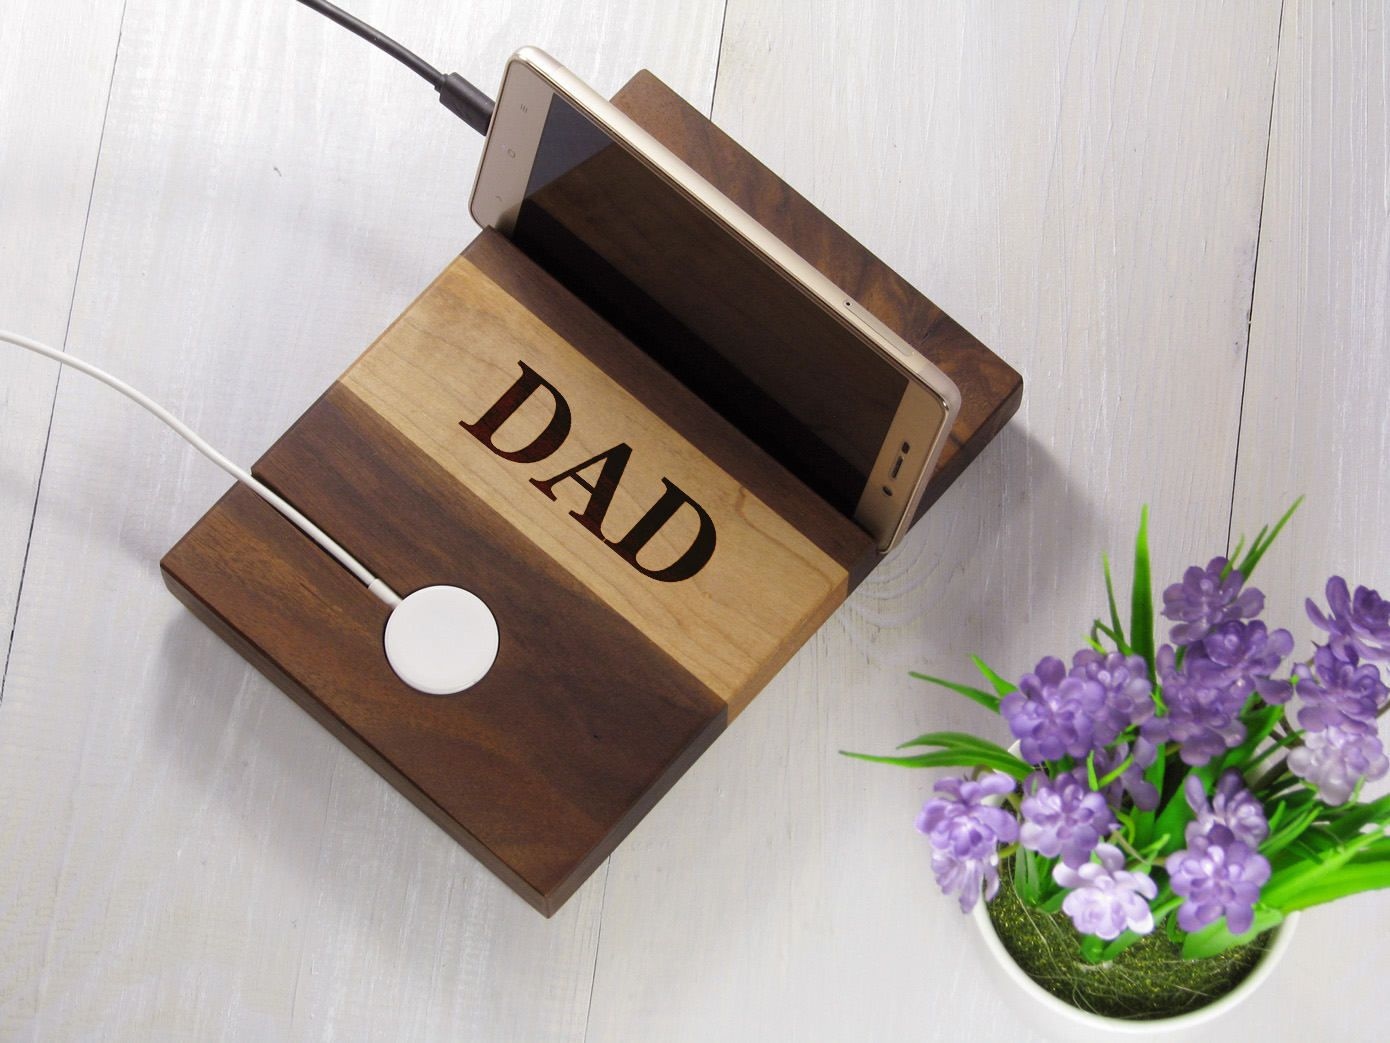 Fathers day gift for dad from daughter personalized apple